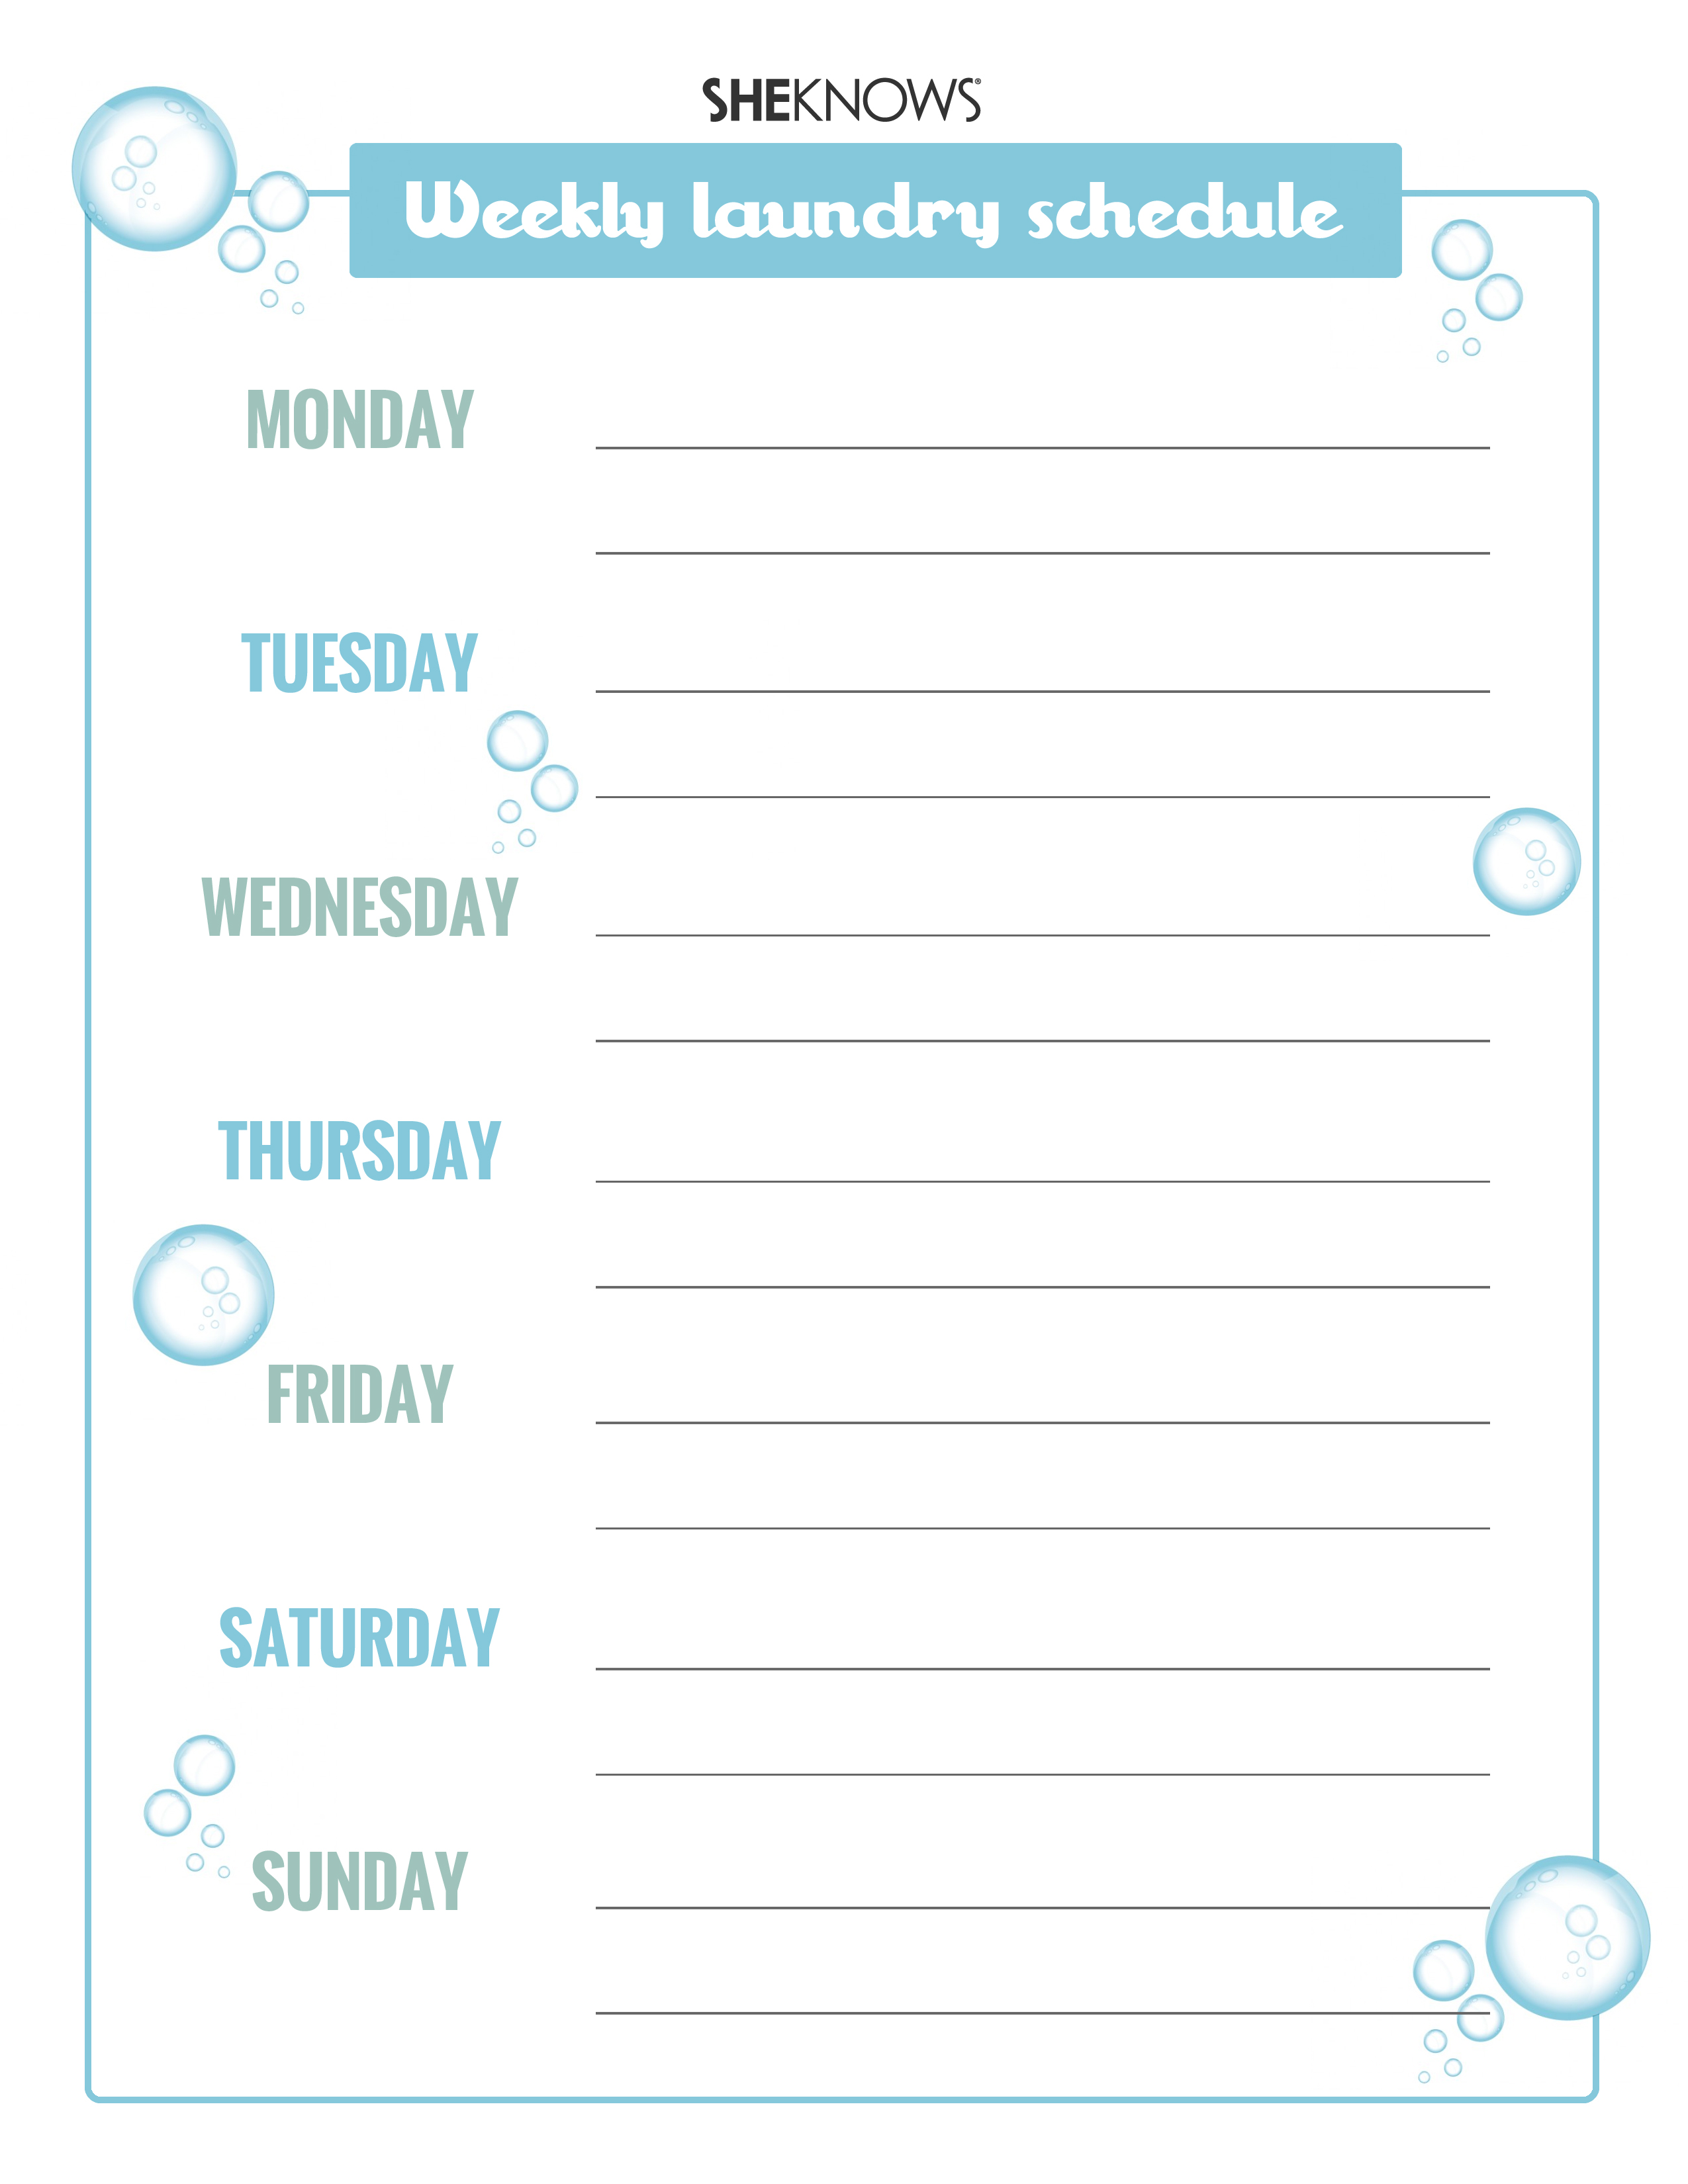 3 Helpful Printables For Scheduling Laundry And Chores